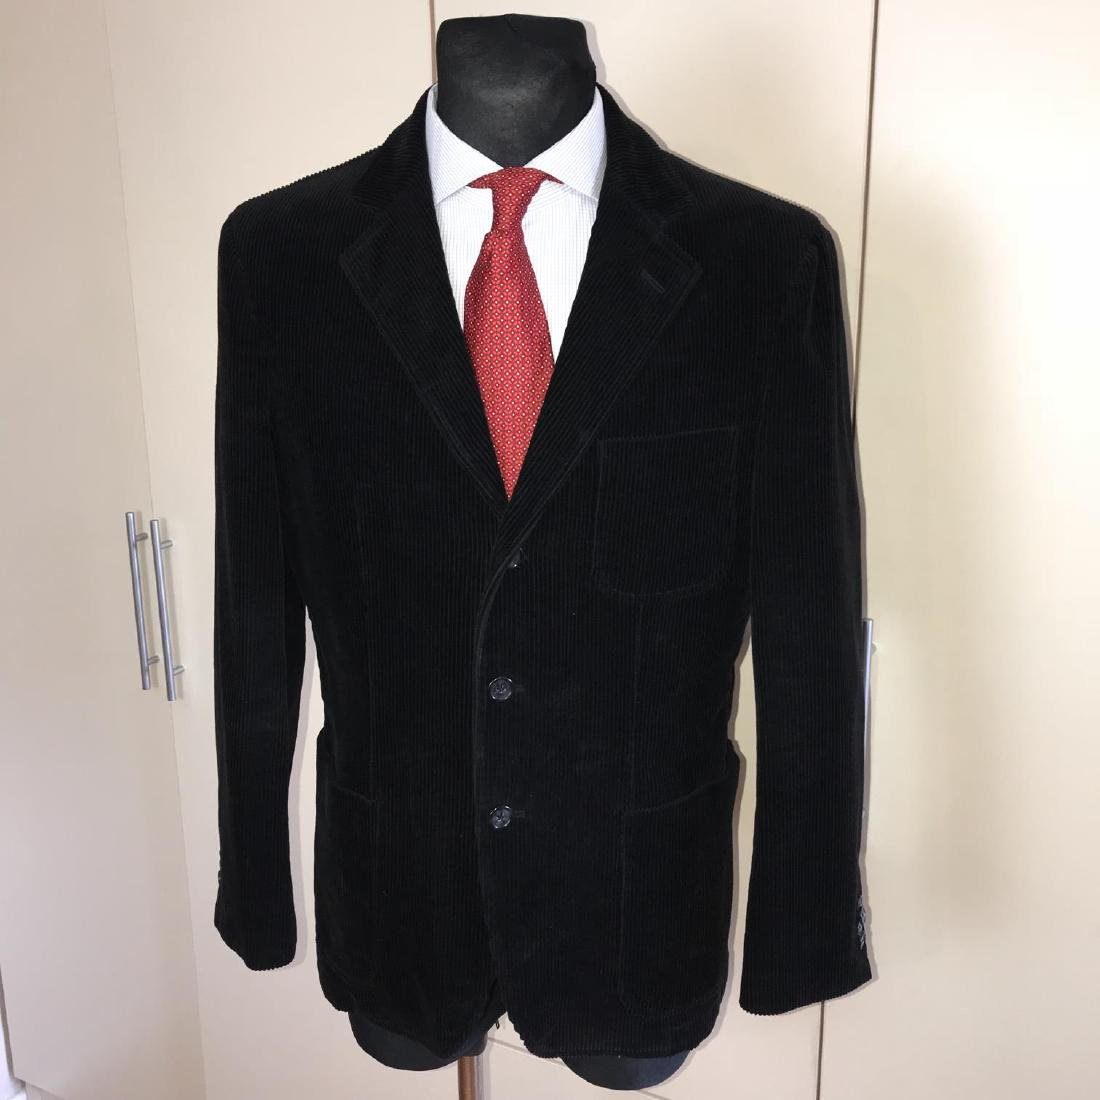 Men's GANT Black Velvet Jacket Blazer Size 48 EU 38 US